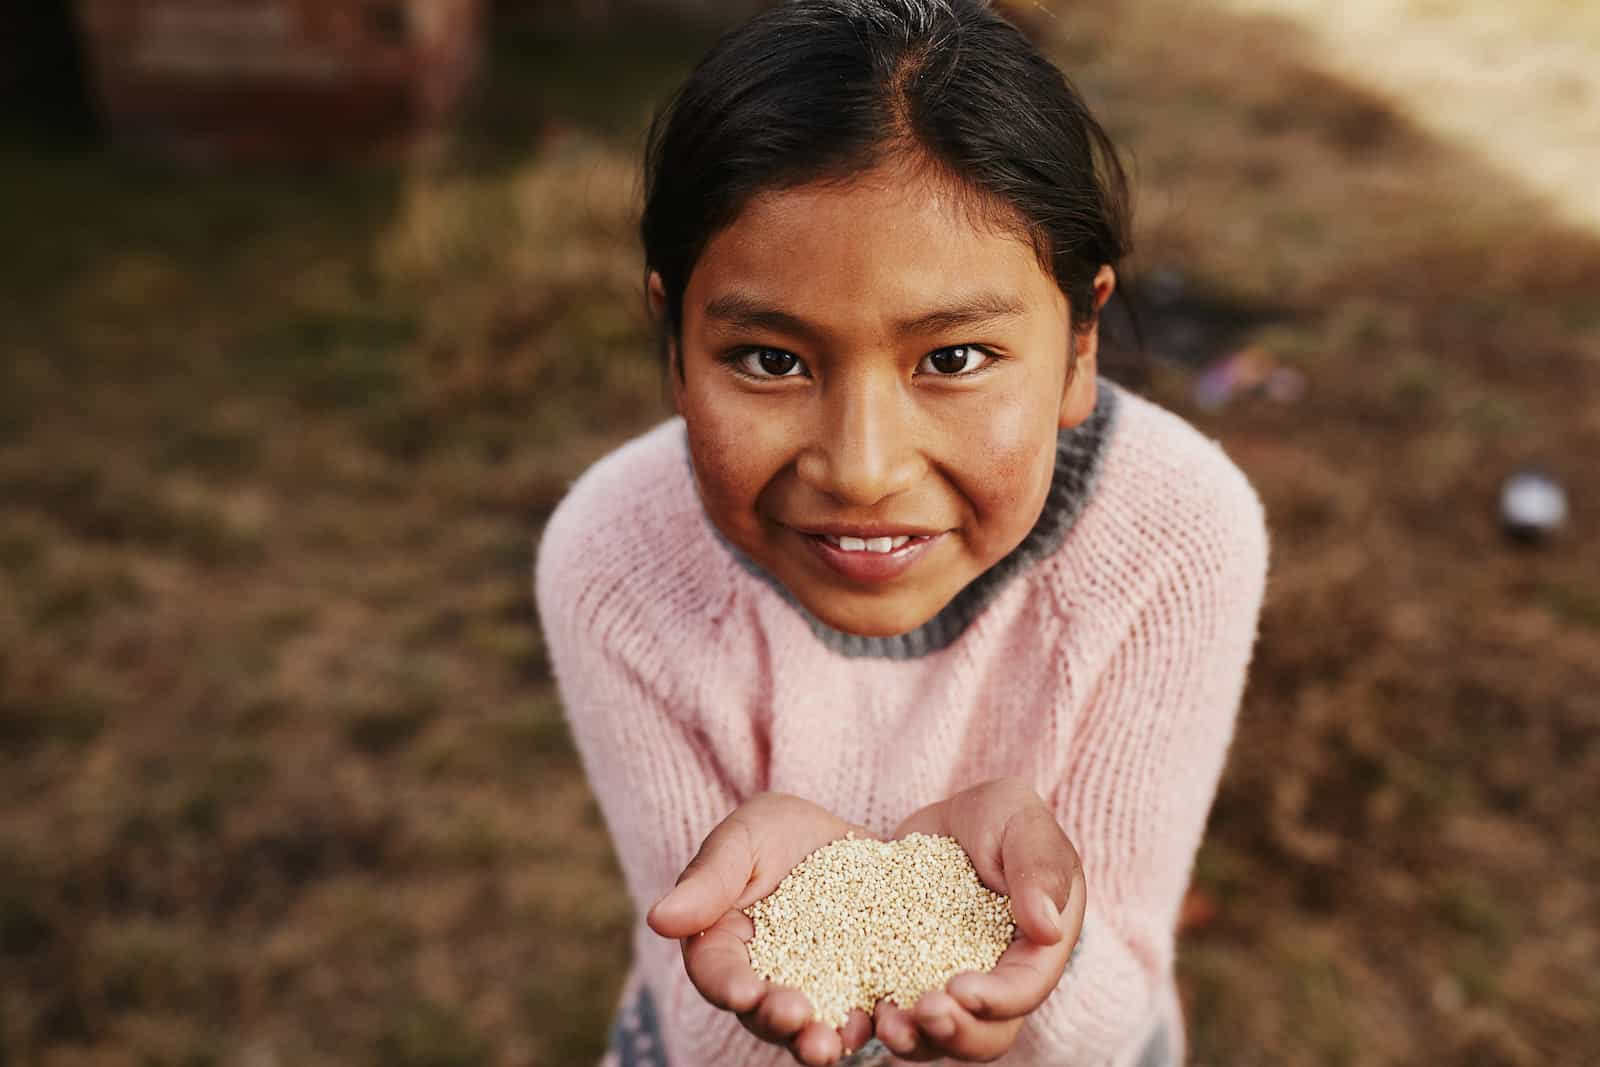 A girl in a pink sweater holds up a handful of seeds.